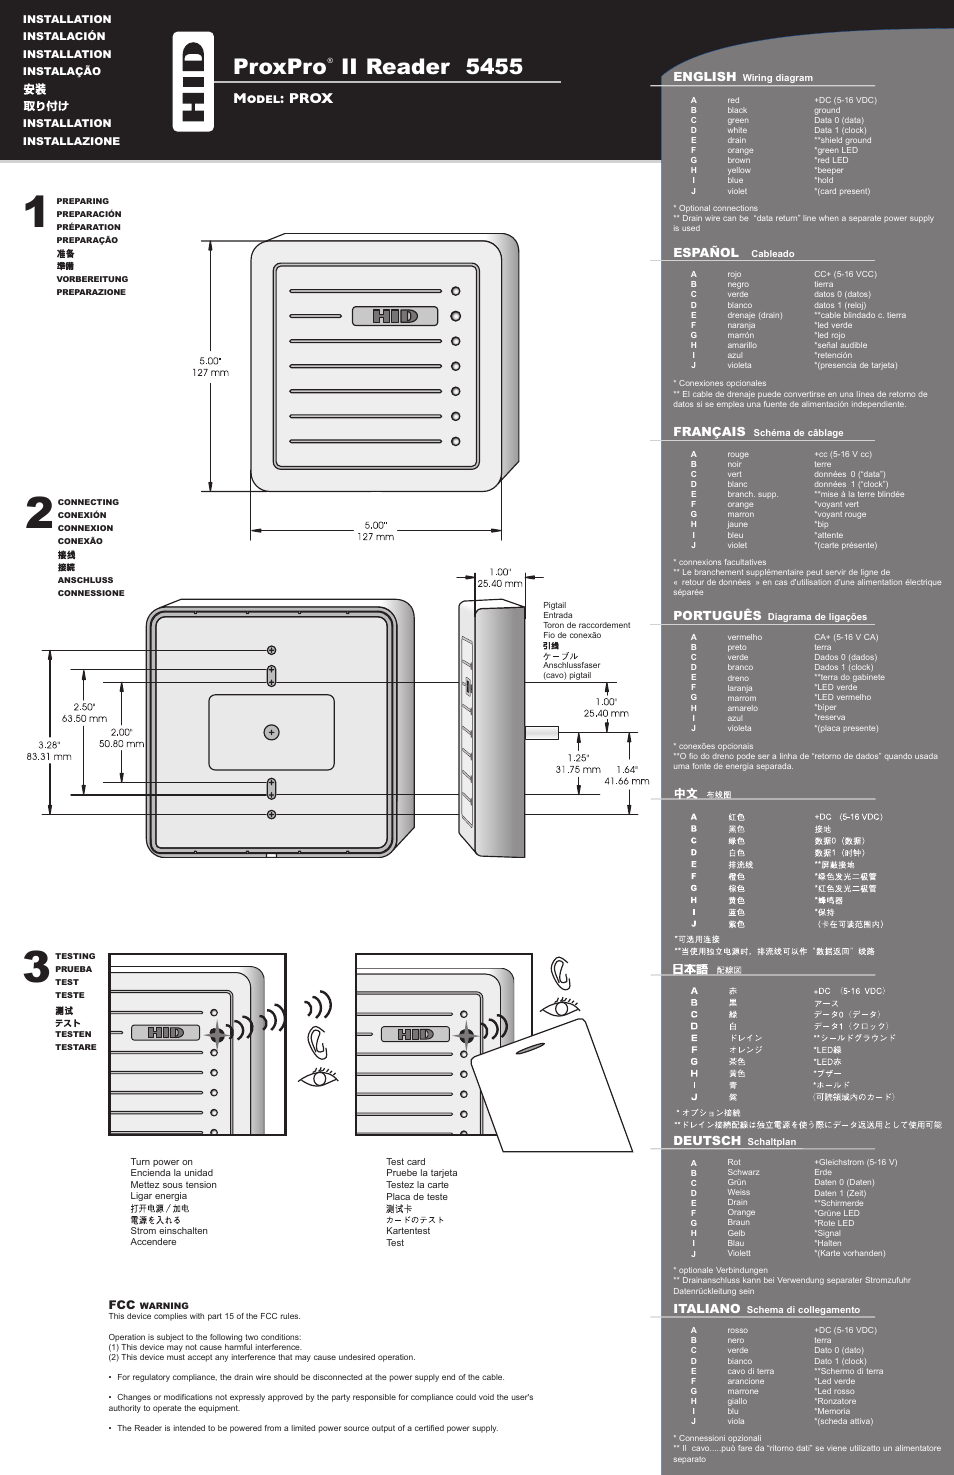 hid proxpro ii installation guide page1?resize=665%2C1028 sophisticated usb 2 0 male to male wiring diagram gallery wiring usb male to male wiring diagram at n-0.co